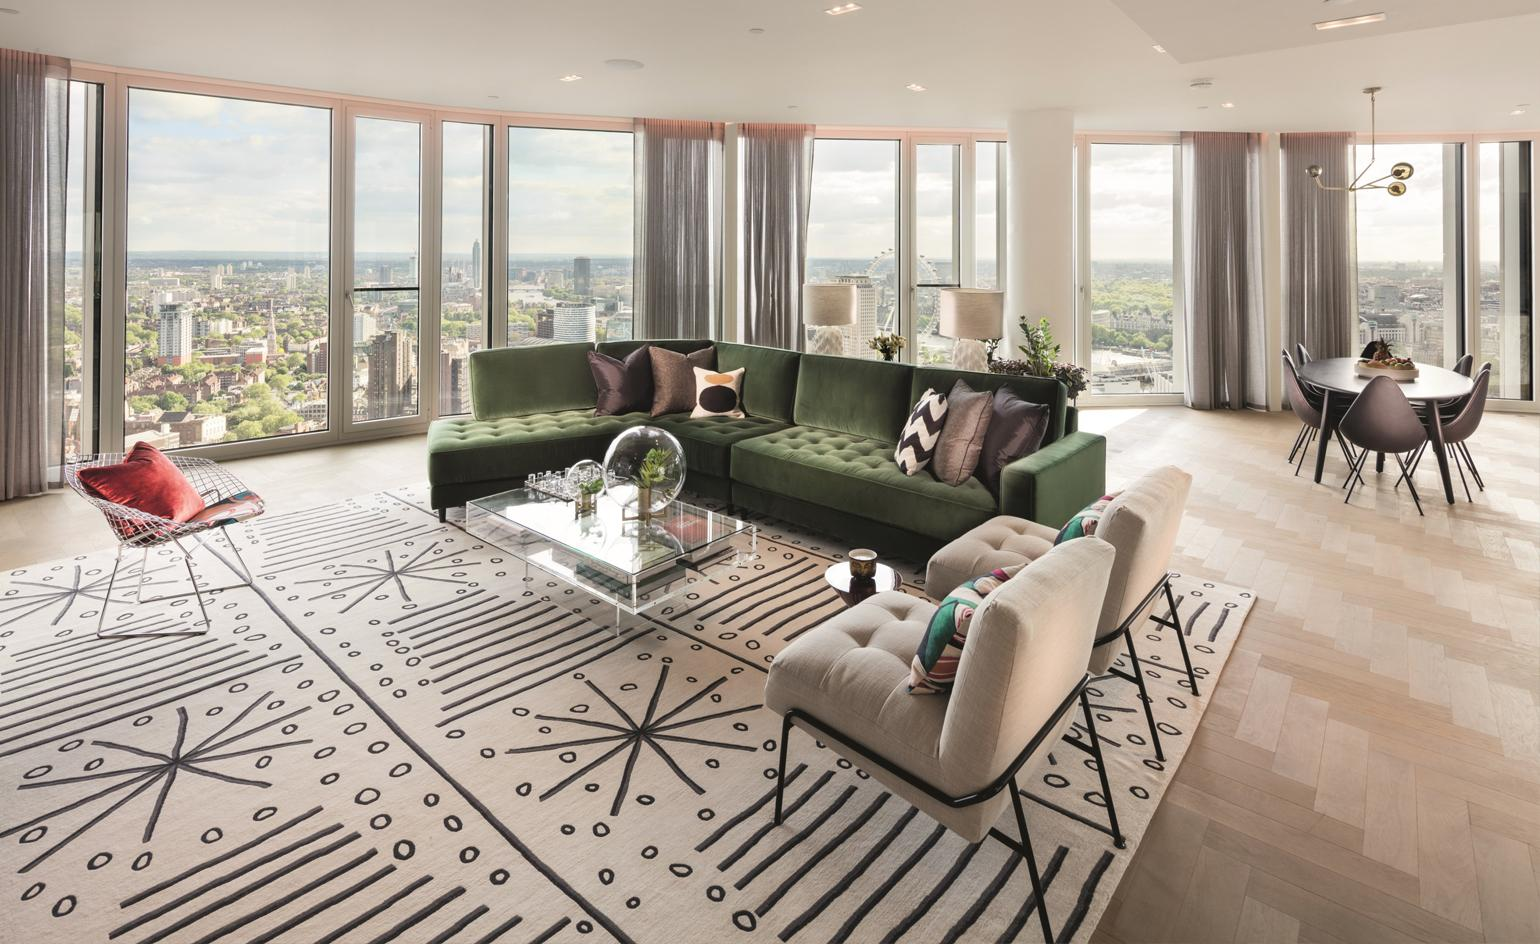 High life: new interiors launched at London's South Bank Tower